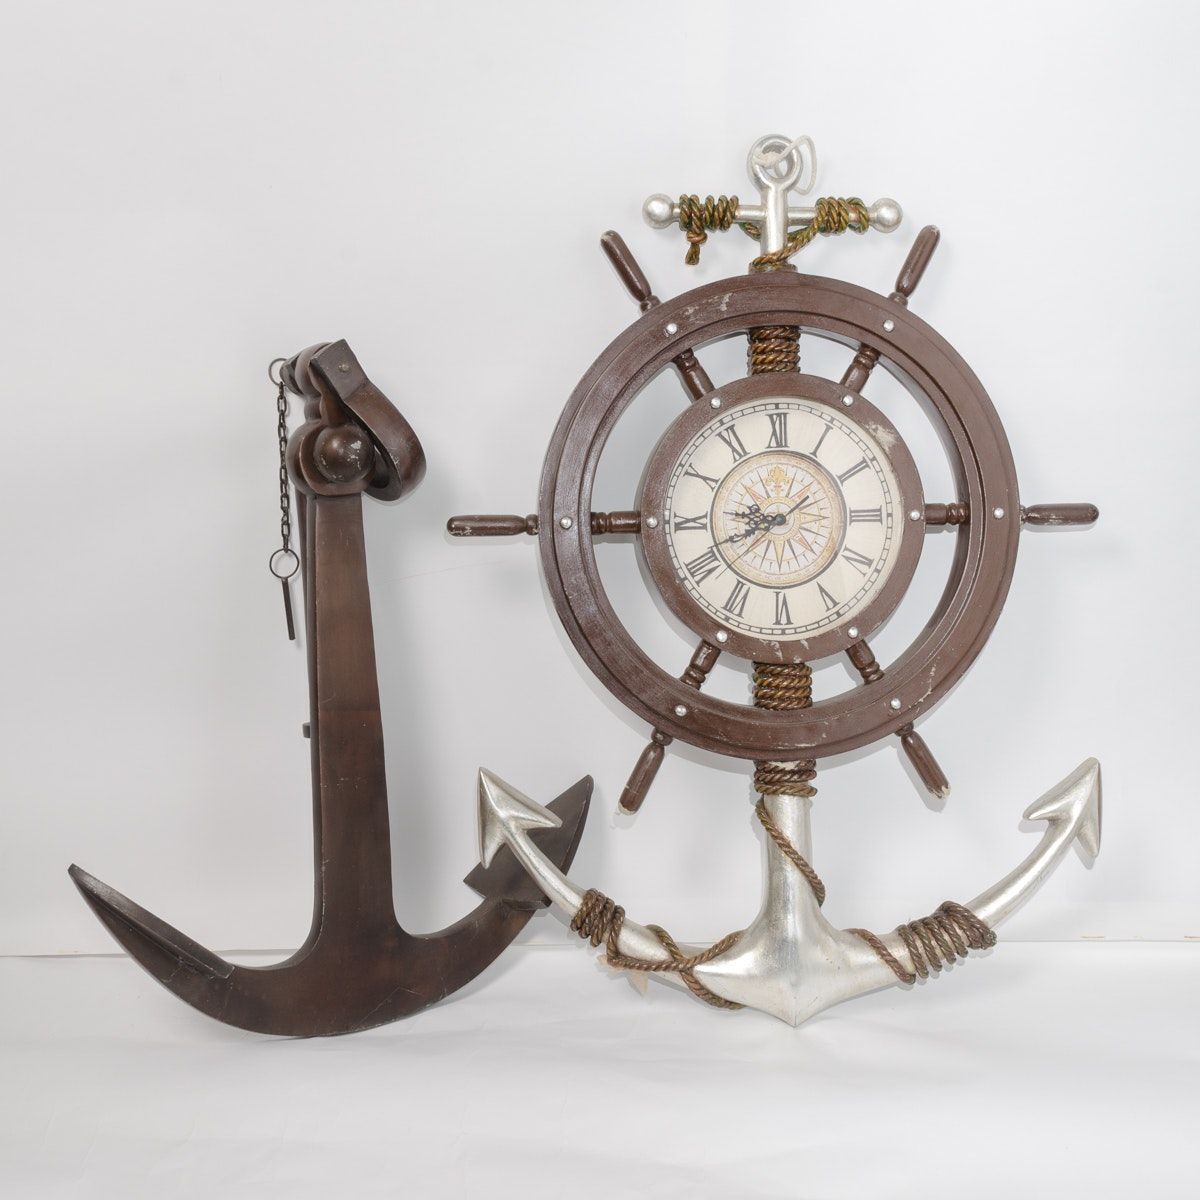 Nautical-Themed Wall Clock and Anchor